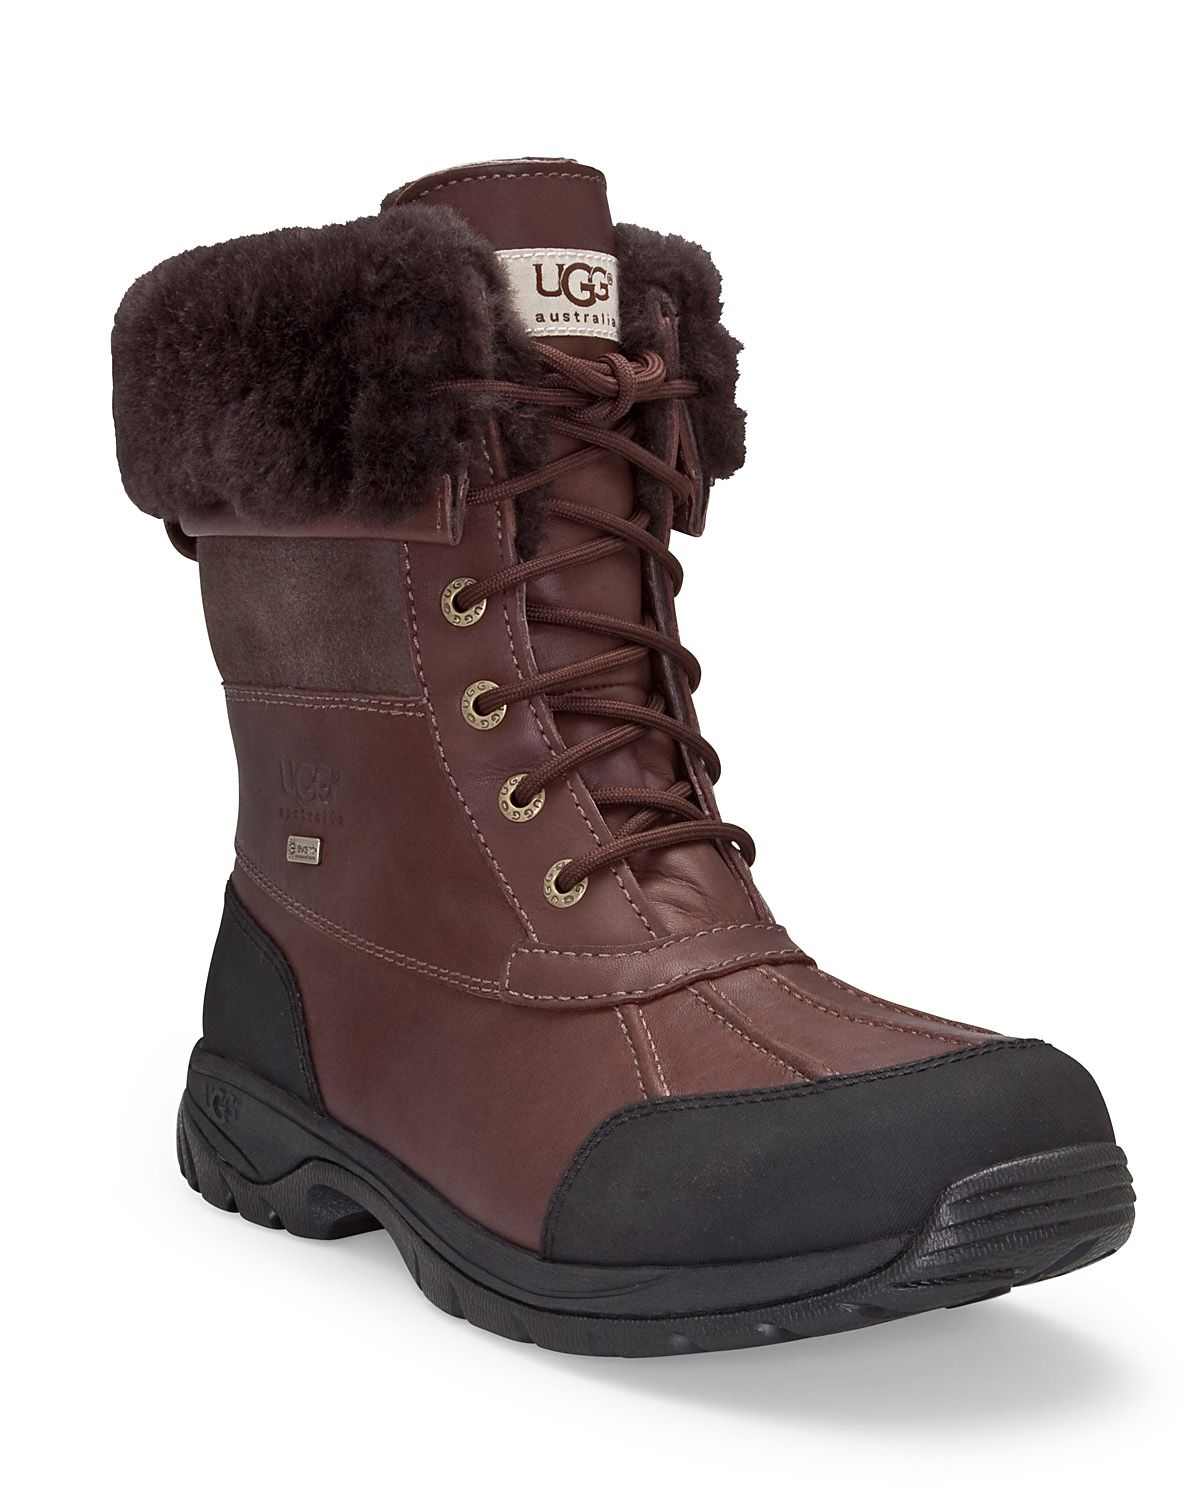 Ugg Mens Butte Waterproof Leather Boots In Brown For Men